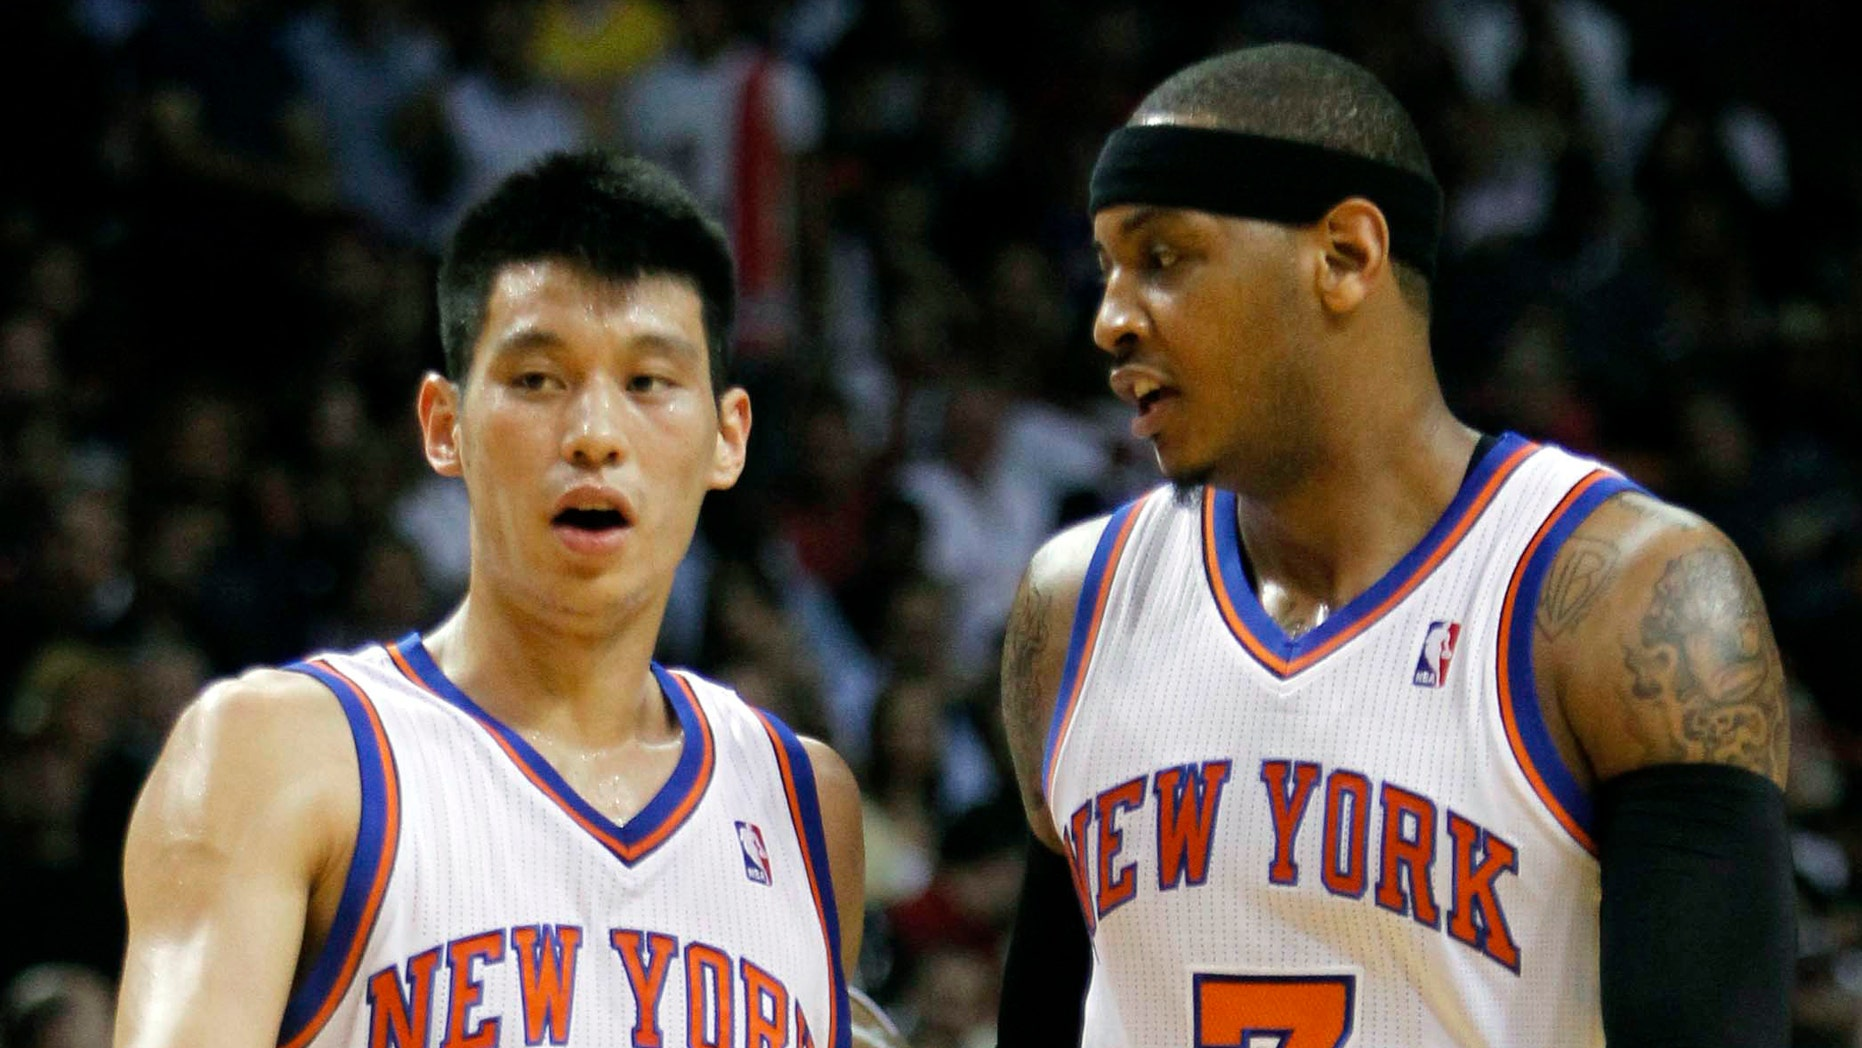 New York Knicks guard Jeremy Lin (17) and teammate Carmelo Anthony (7) talk during the first half of an NBA basketball game against the Miami Heat, Thursday, Feb. 23, 2012, in Miami.  (AP Photo/Alan Diaz)